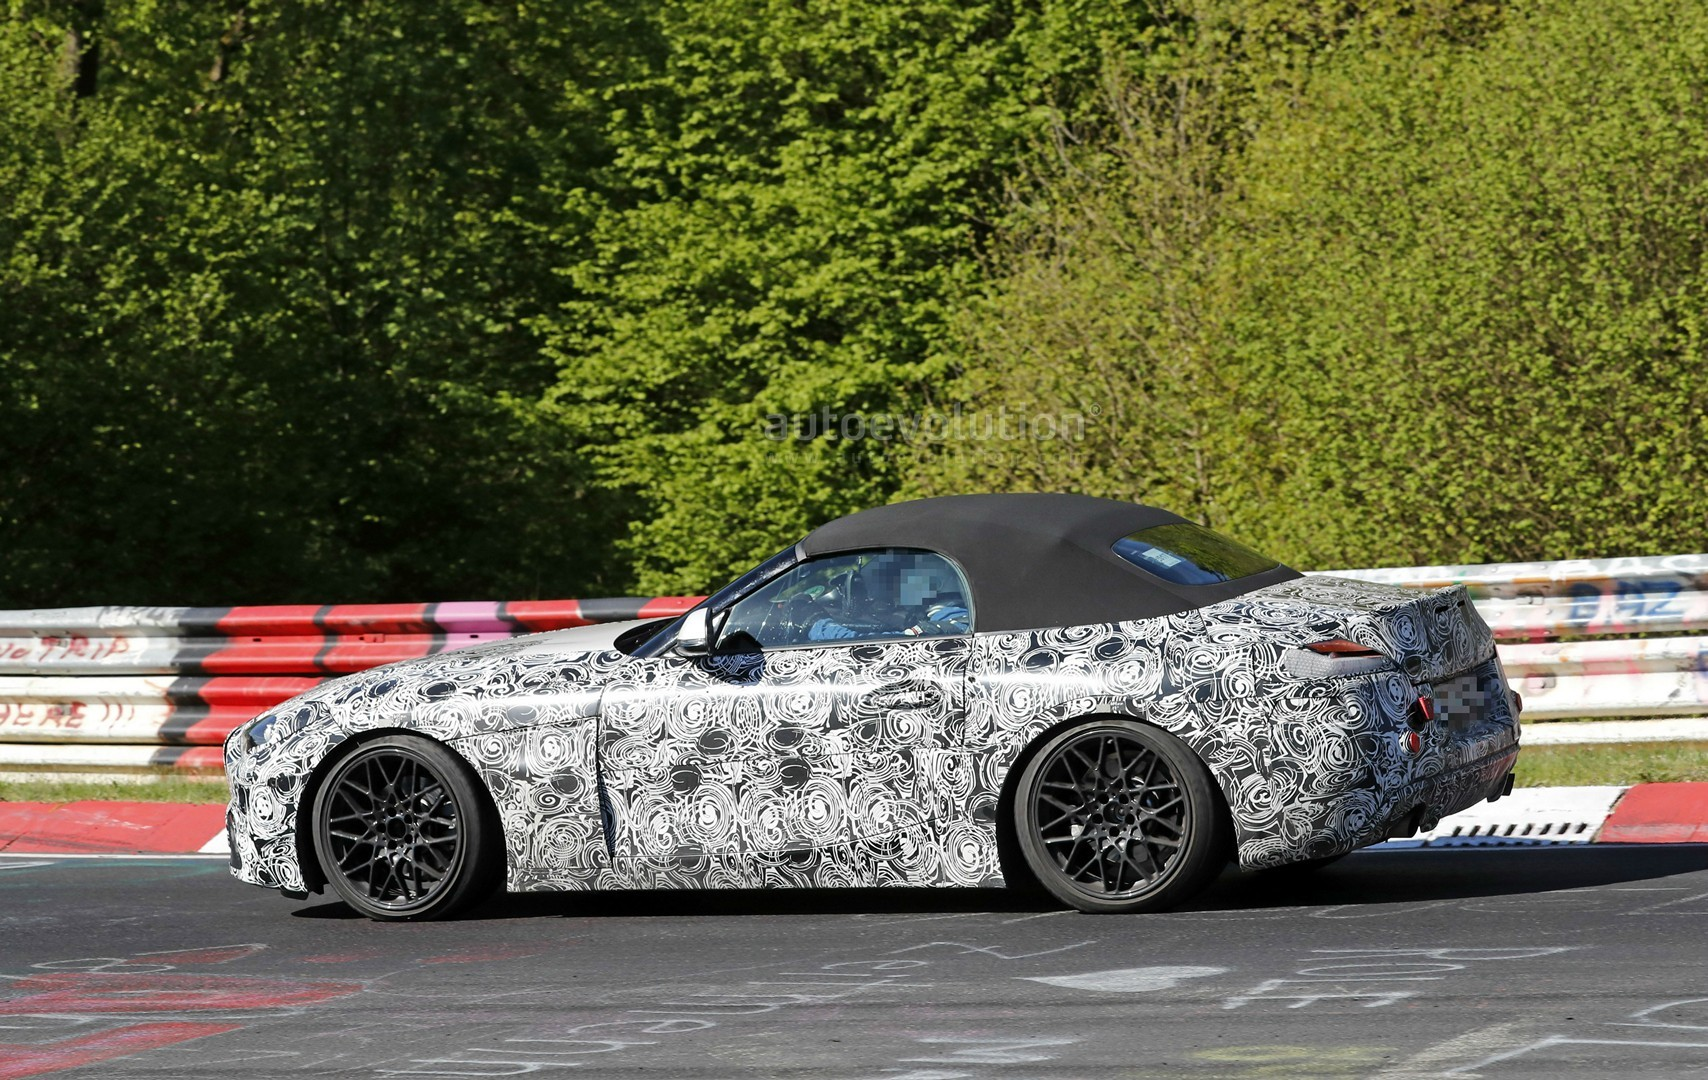 2018 bmw z4 s20i interior spyshots reveal specs and 6. Black Bedroom Furniture Sets. Home Design Ideas